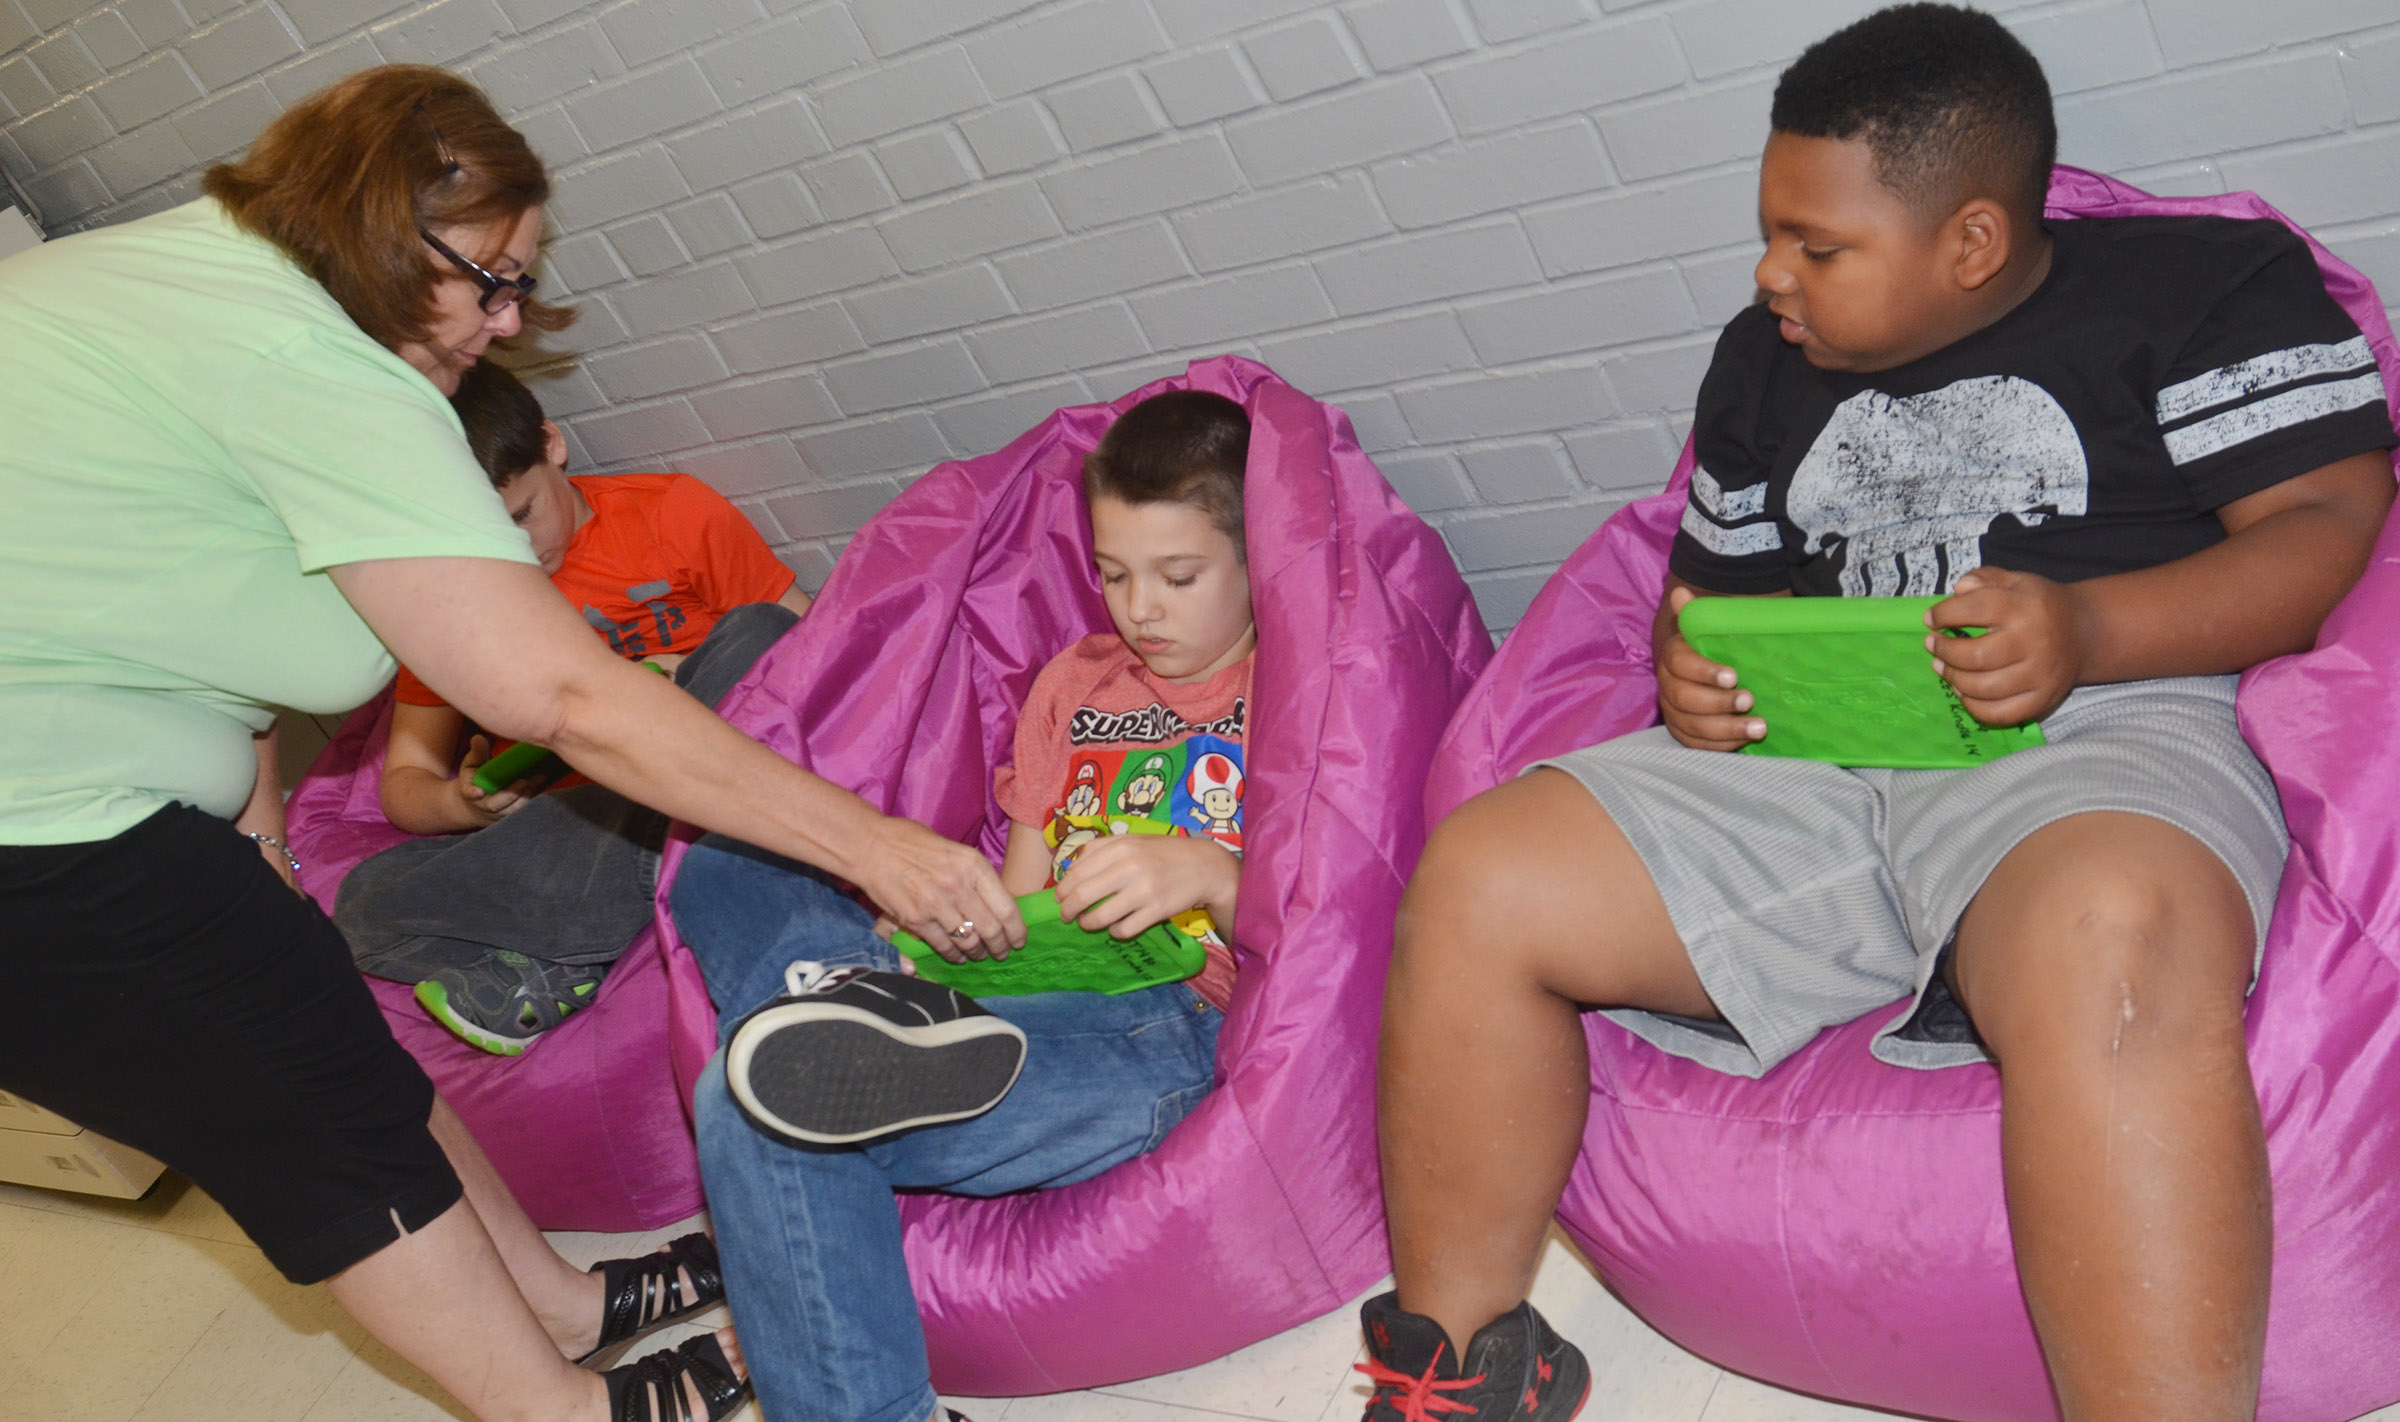 CES exceptional child educator Libby Caulk helps fourth-graders Landon Tucker, at left, and Malikiah Spurling work math problems on their Kindles via the Star Math program.